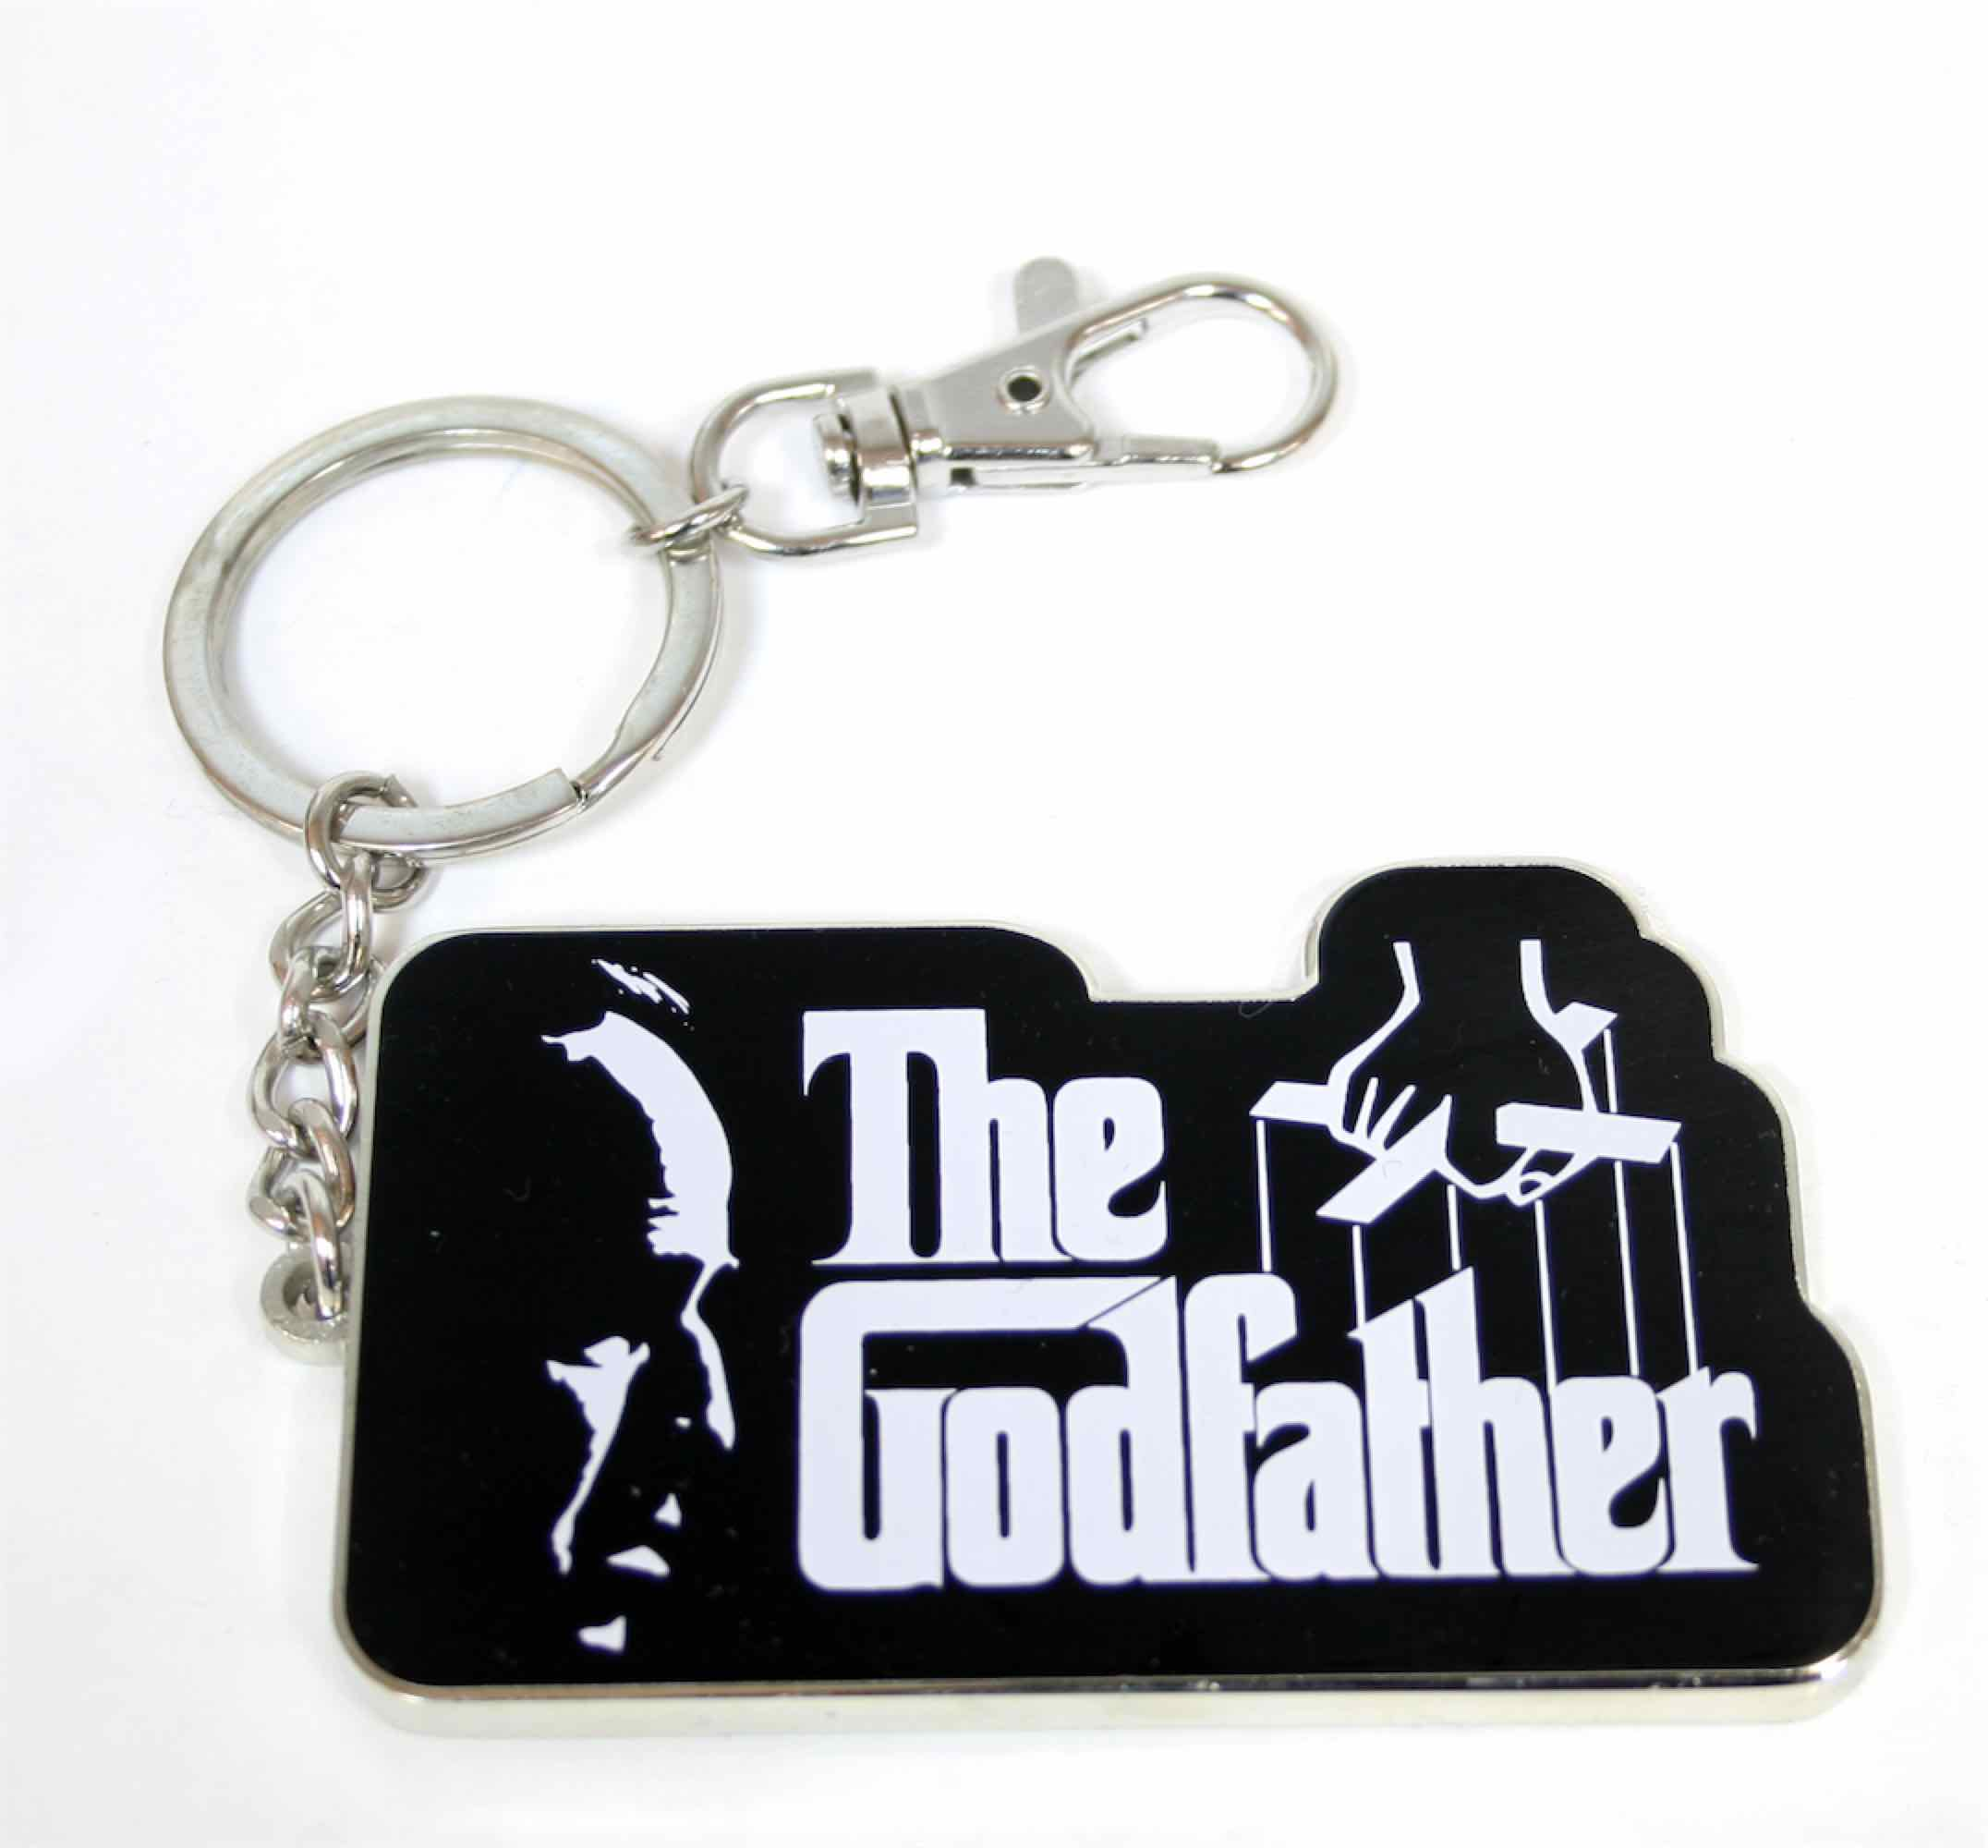 LOGO THE GODFATHER LLAVERO MOSQUETON THE GODFATHER